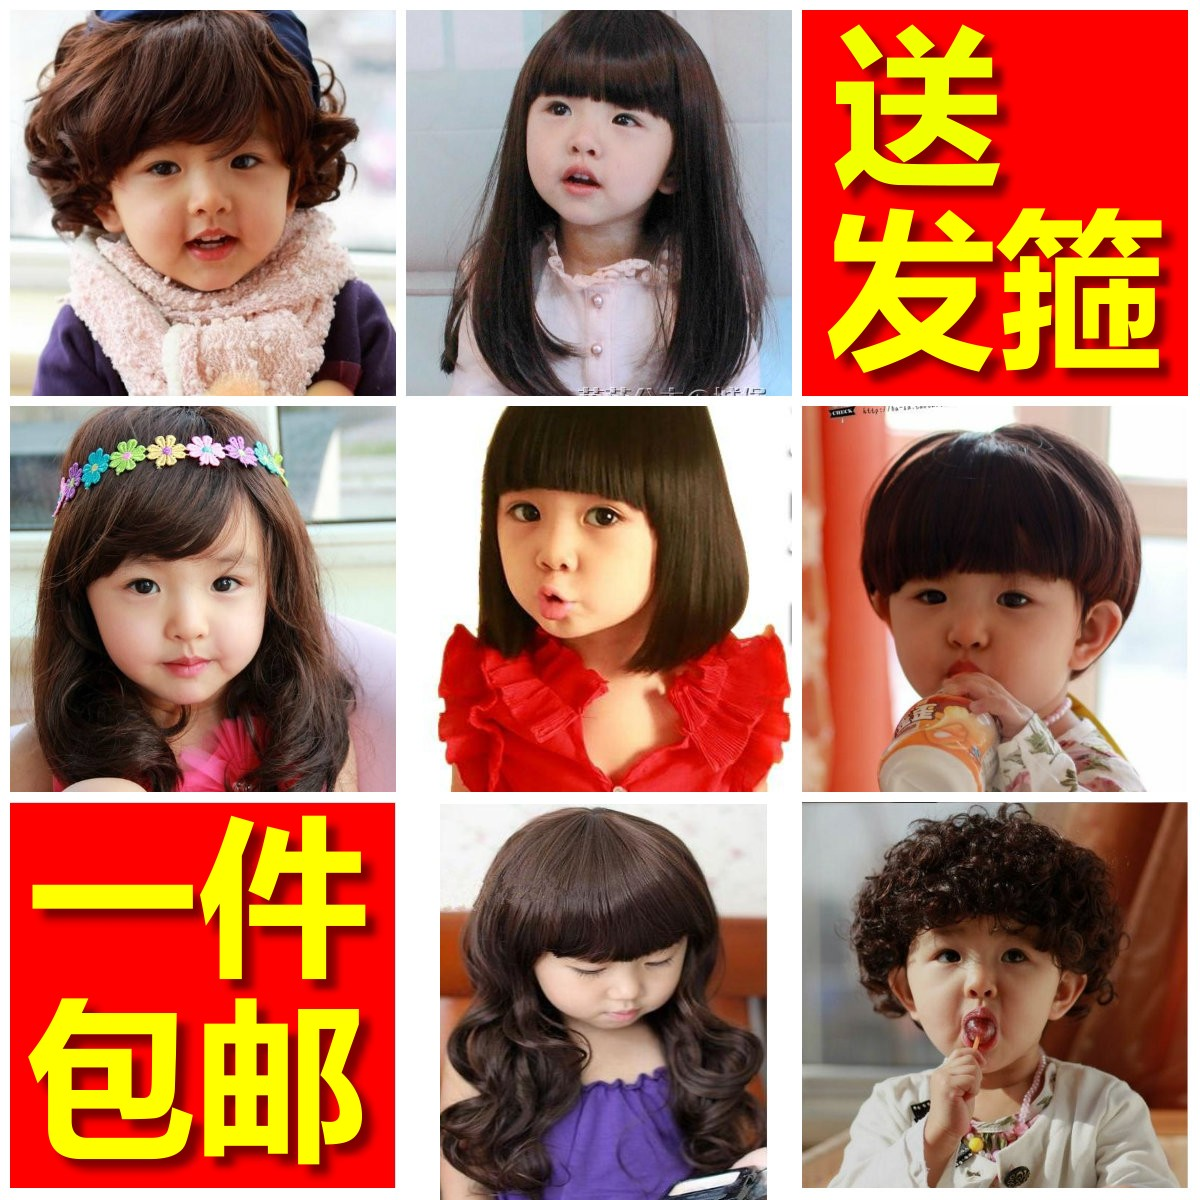 Shipping specials baby infant Princess hair wig wig hair accessories really short volume photograph more money